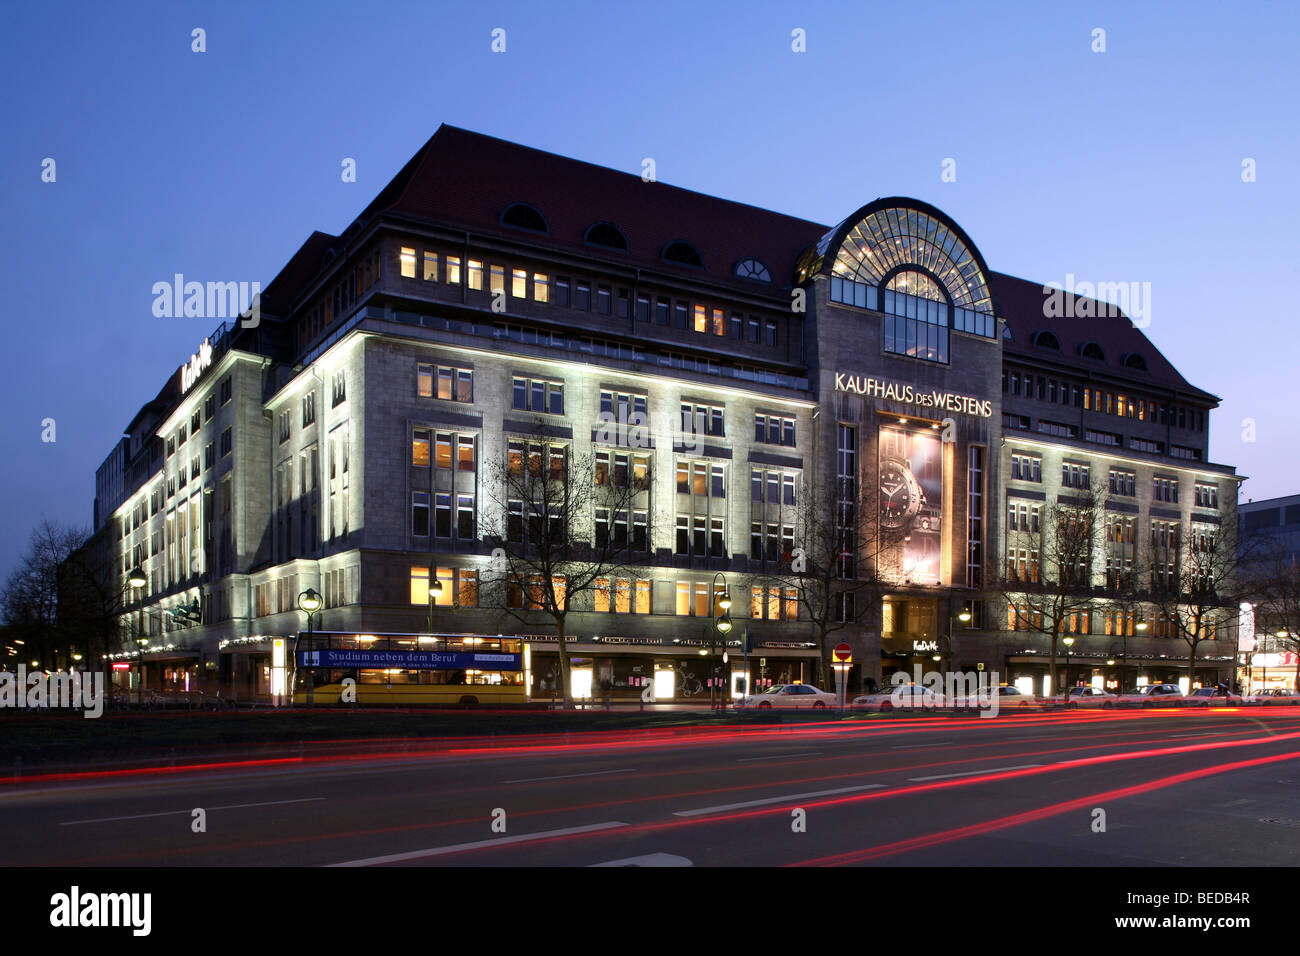 kaufhaus des westens kadewe department store berlin germany stock photo royalty free image. Black Bedroom Furniture Sets. Home Design Ideas